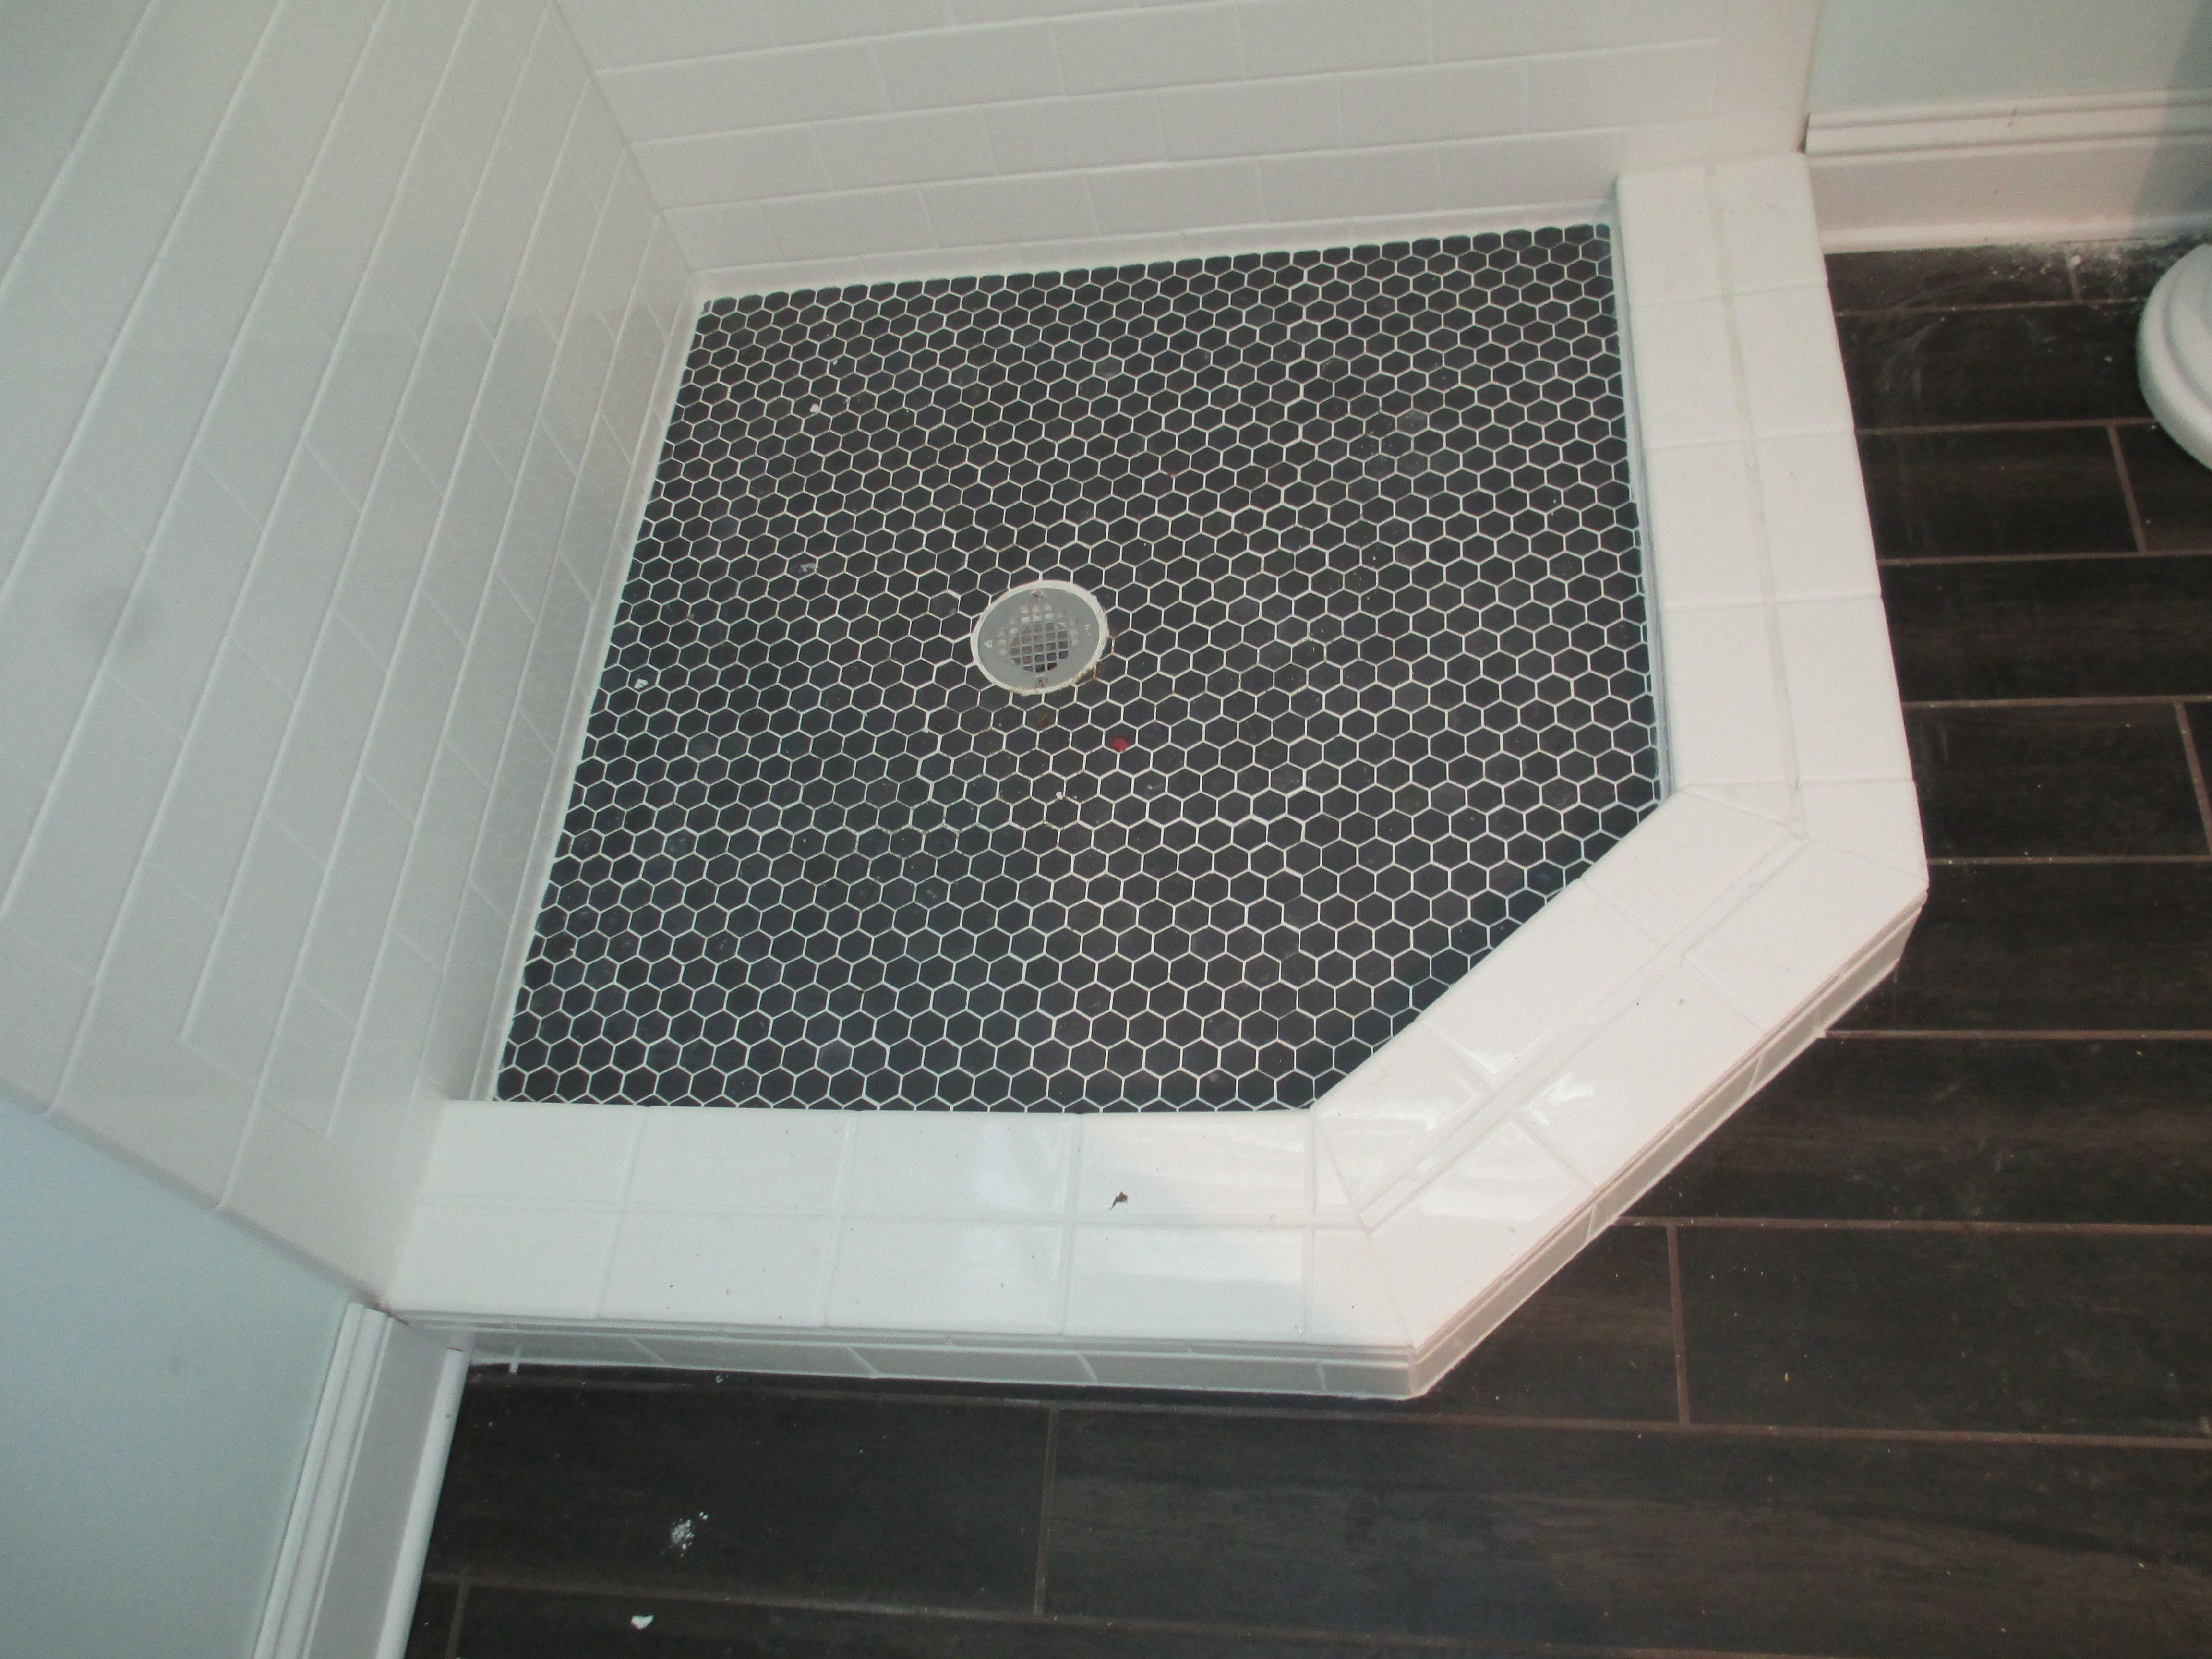 Shower Floor Ideas Black Hexagon Tile With White Grout